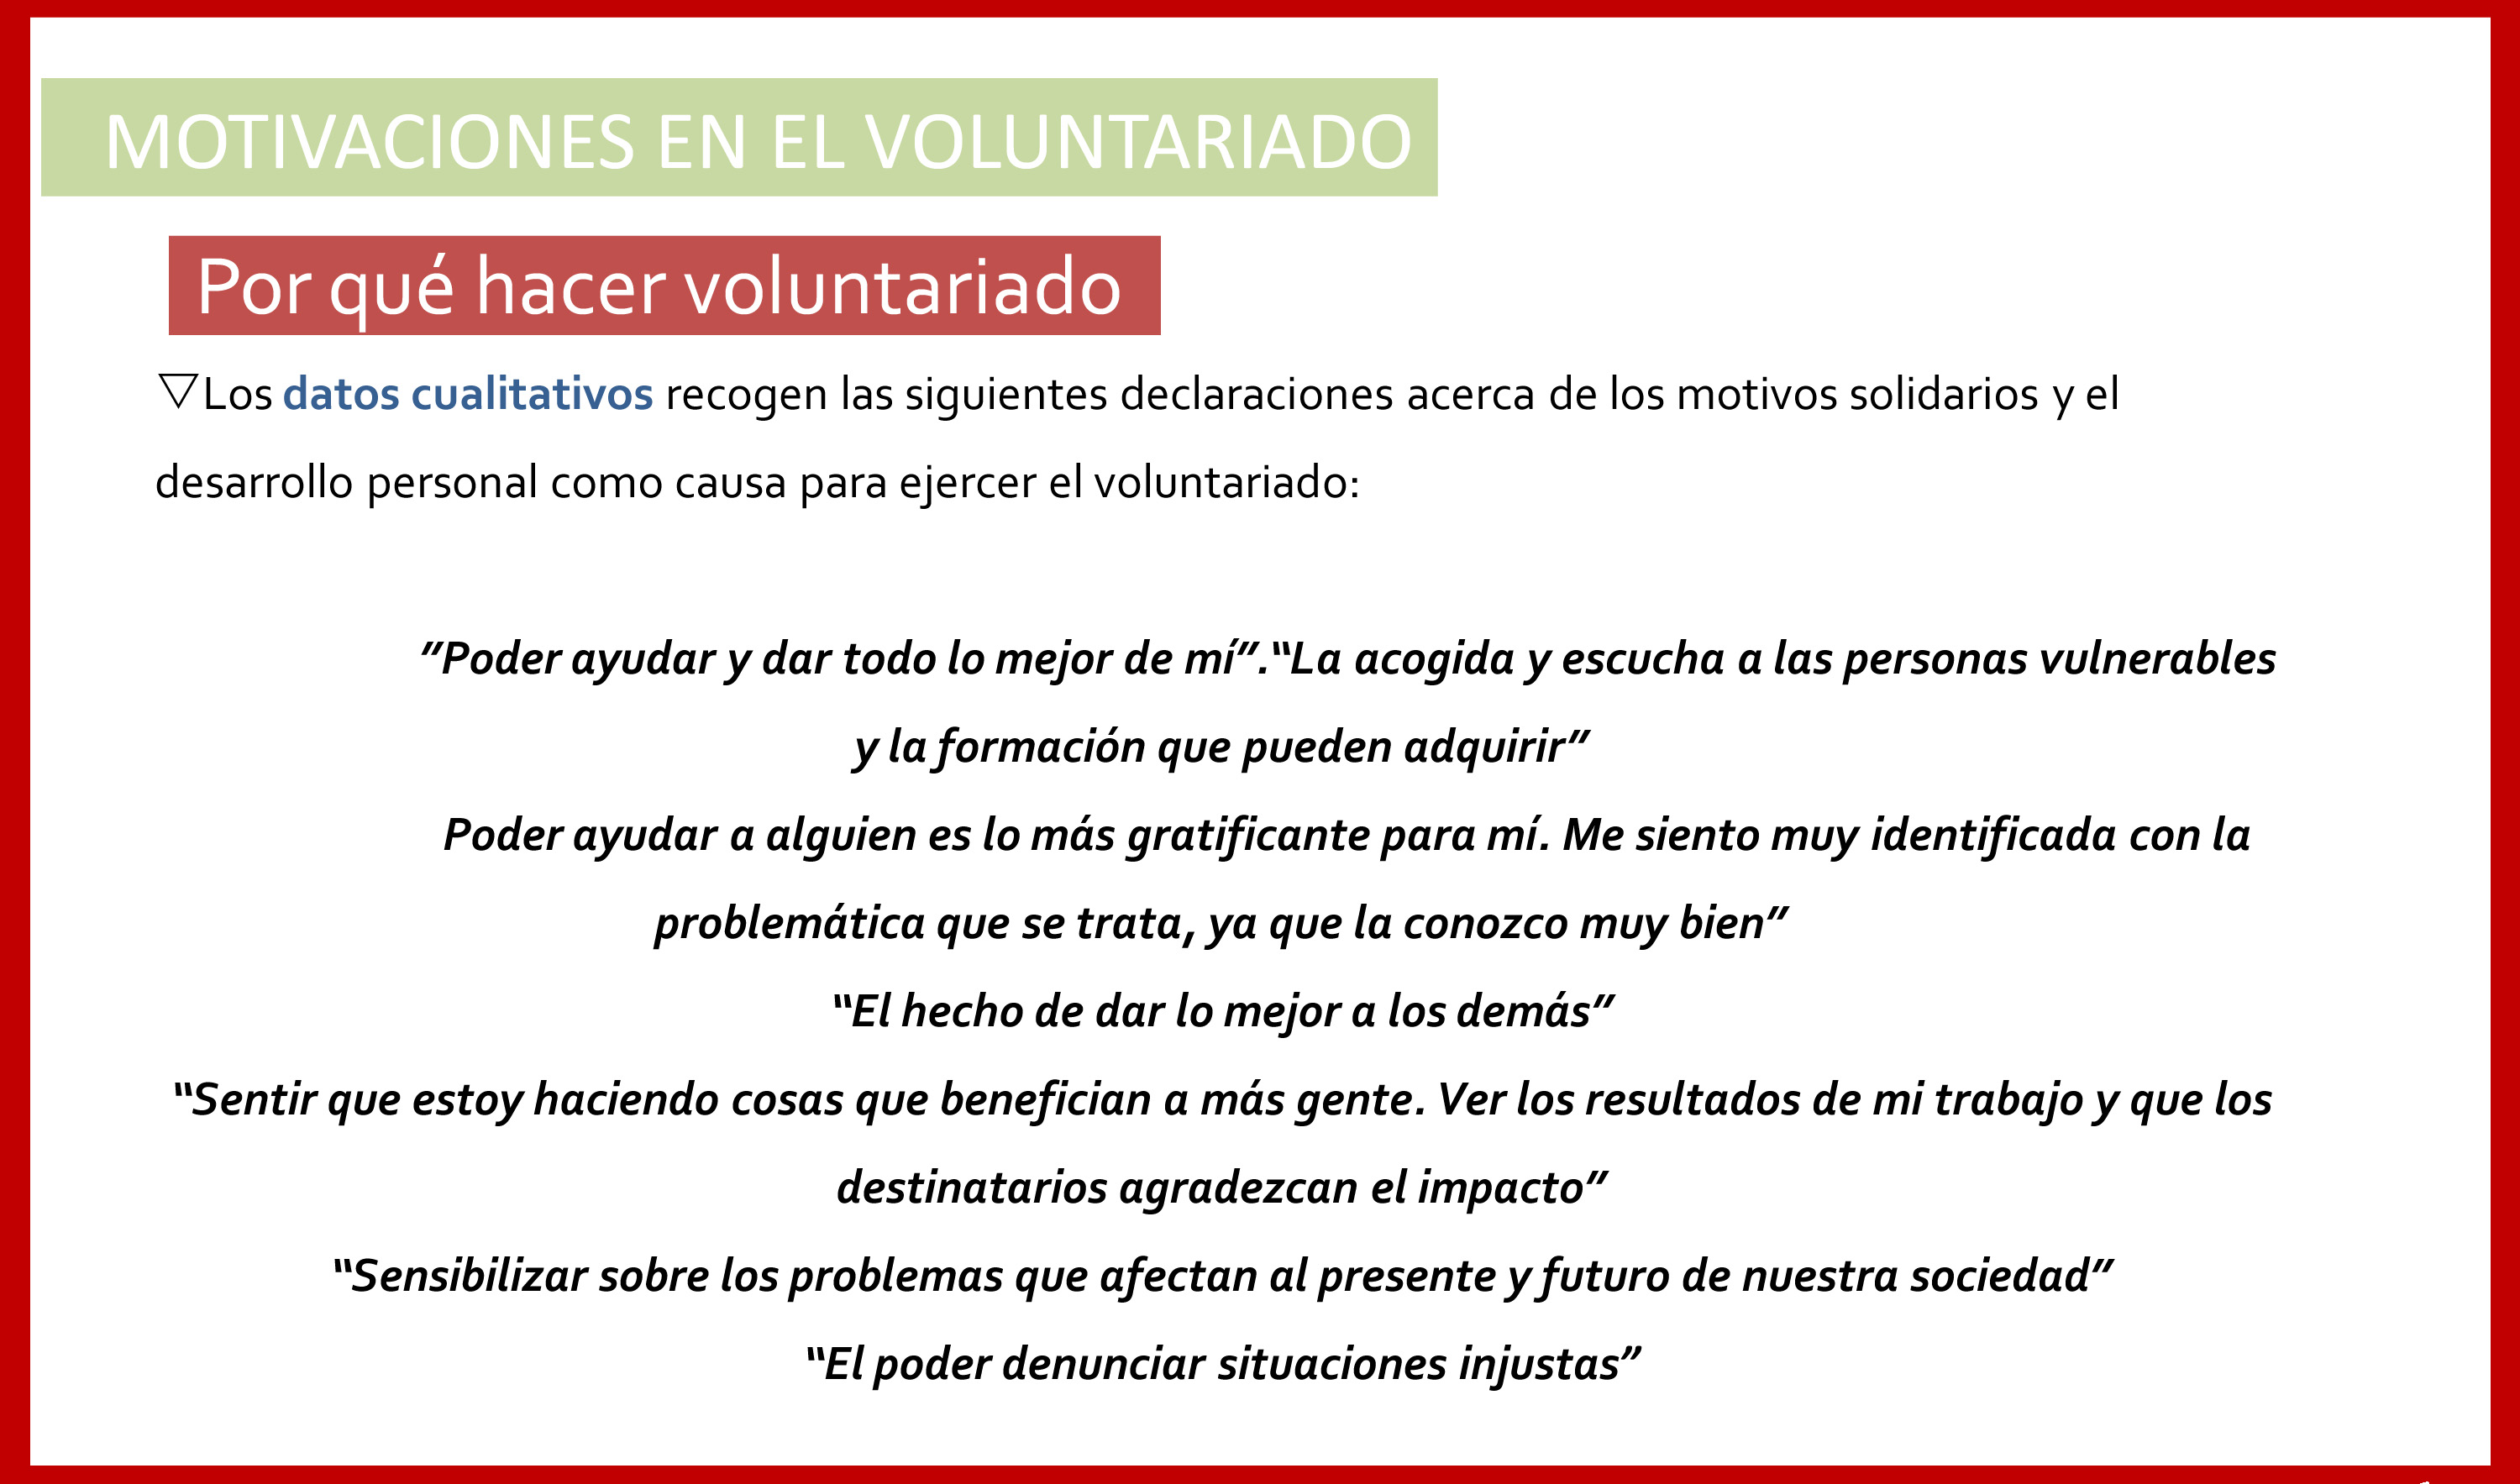 perfil_voluntariado_madrid_persona voluntaria motivaciones_